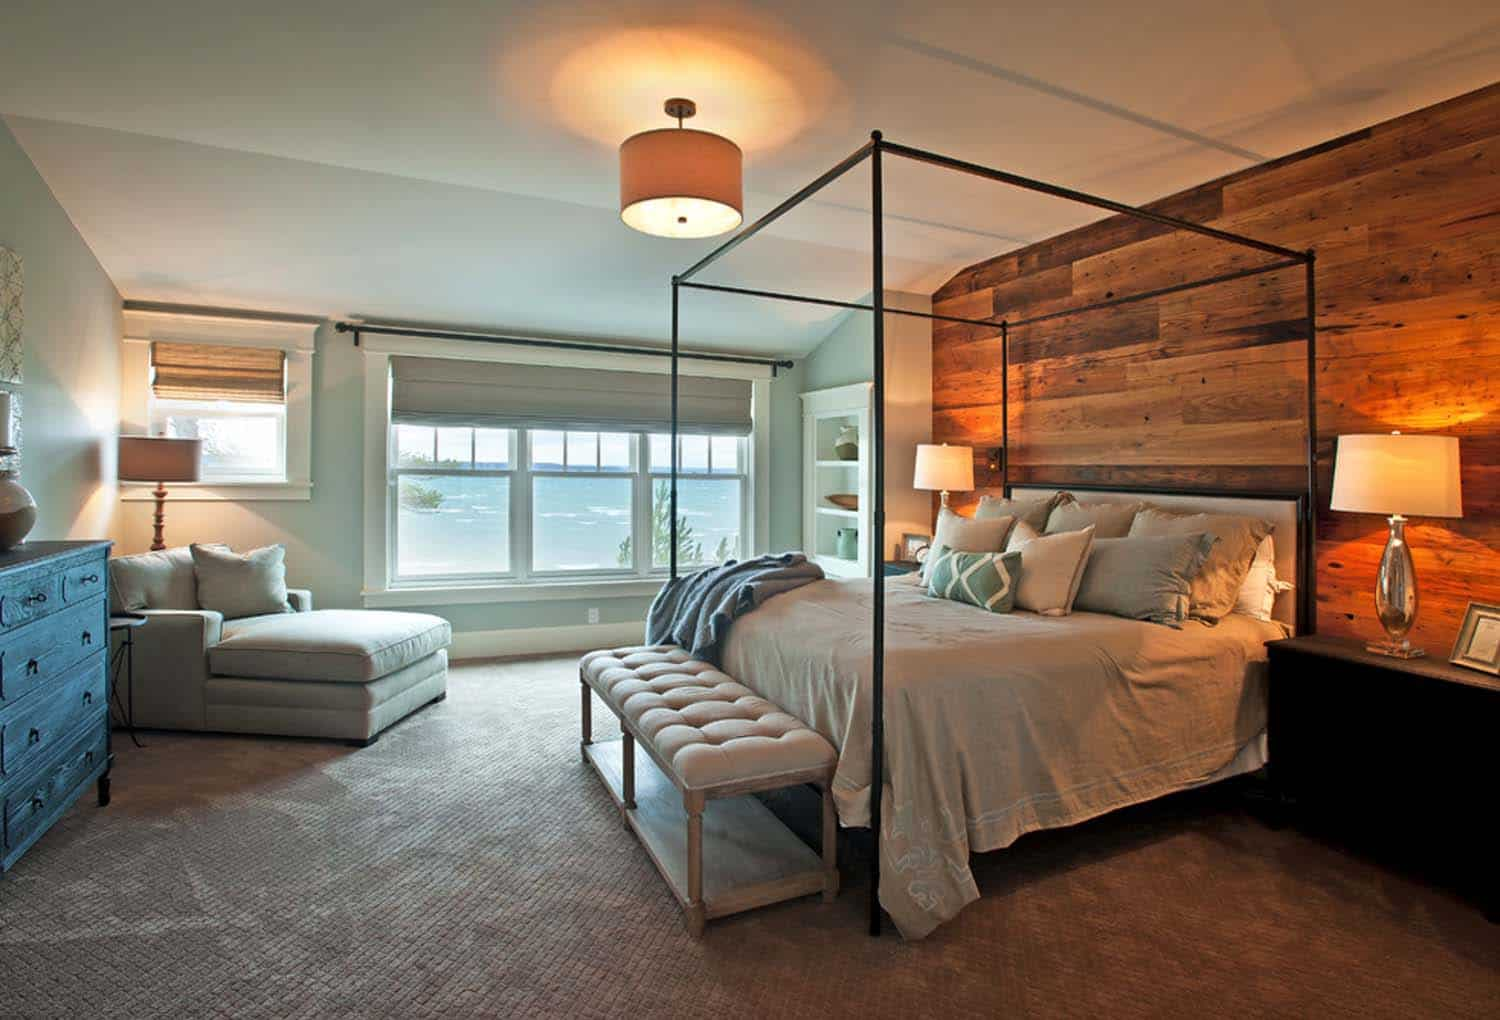 grand-traverse-bay-home-kp-designs-22-1-kindesign